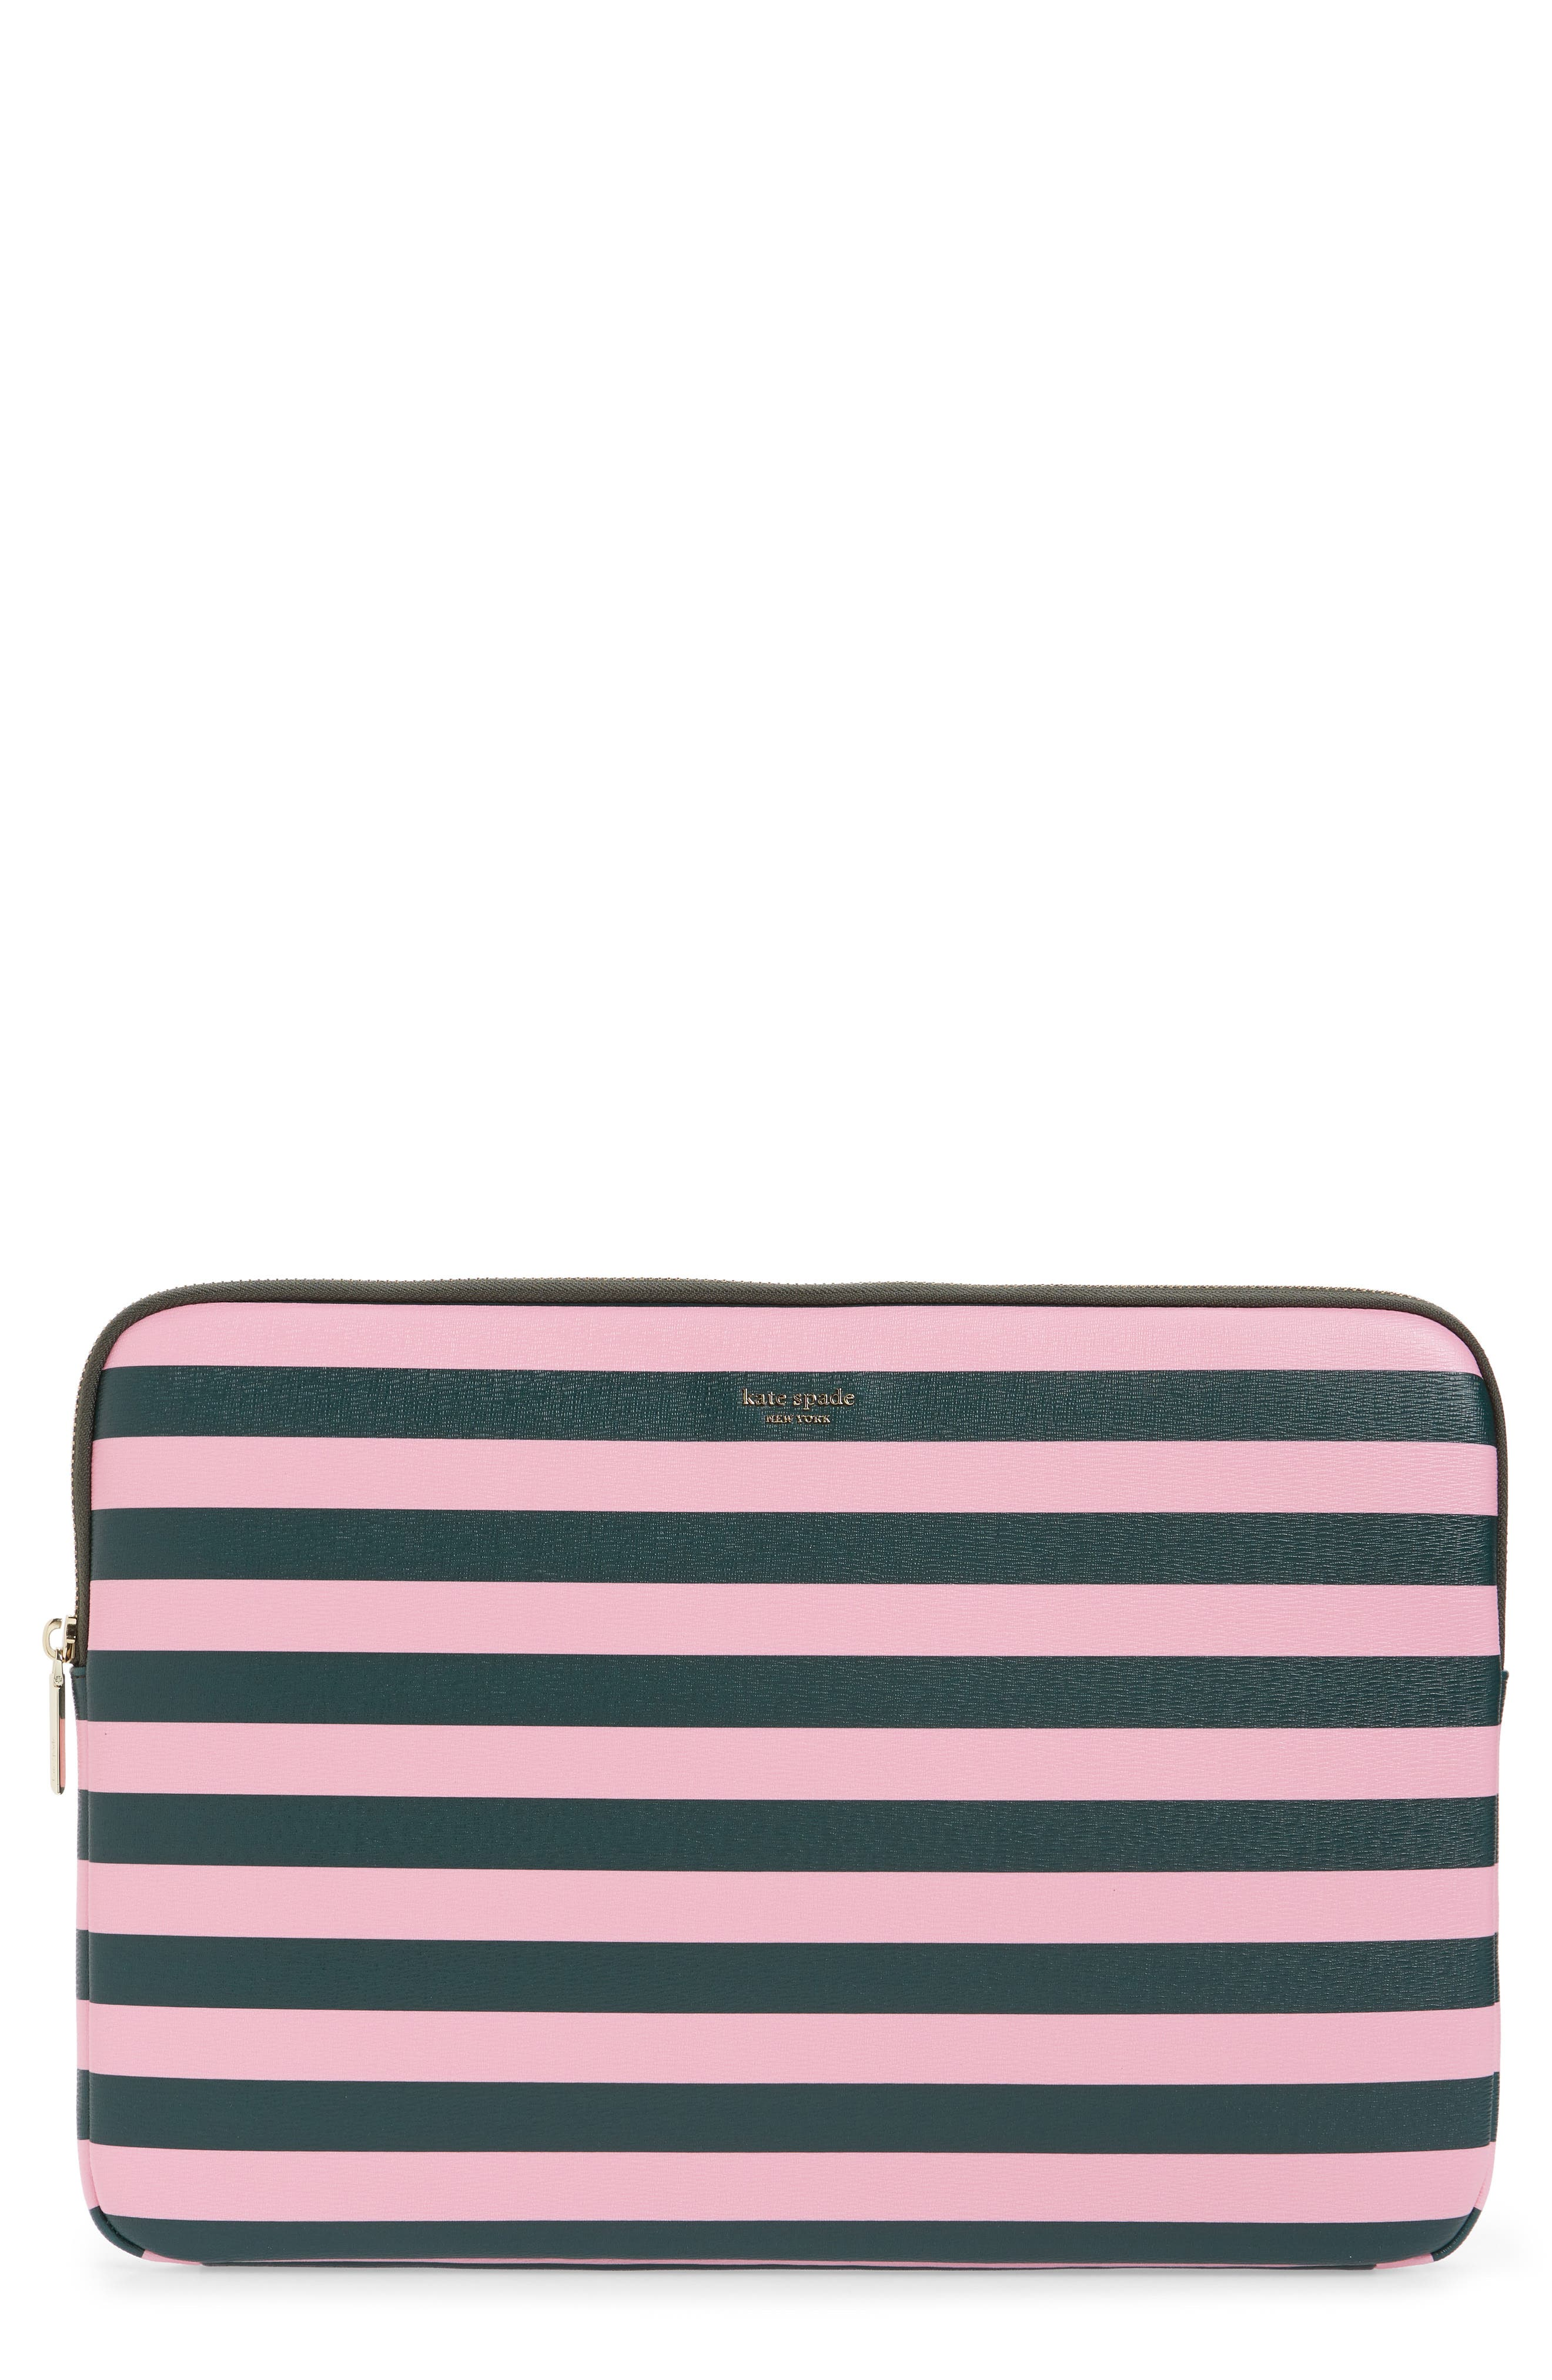 low priced de1c0 b01a4 kate spade new york laptop bags | Nordstrom